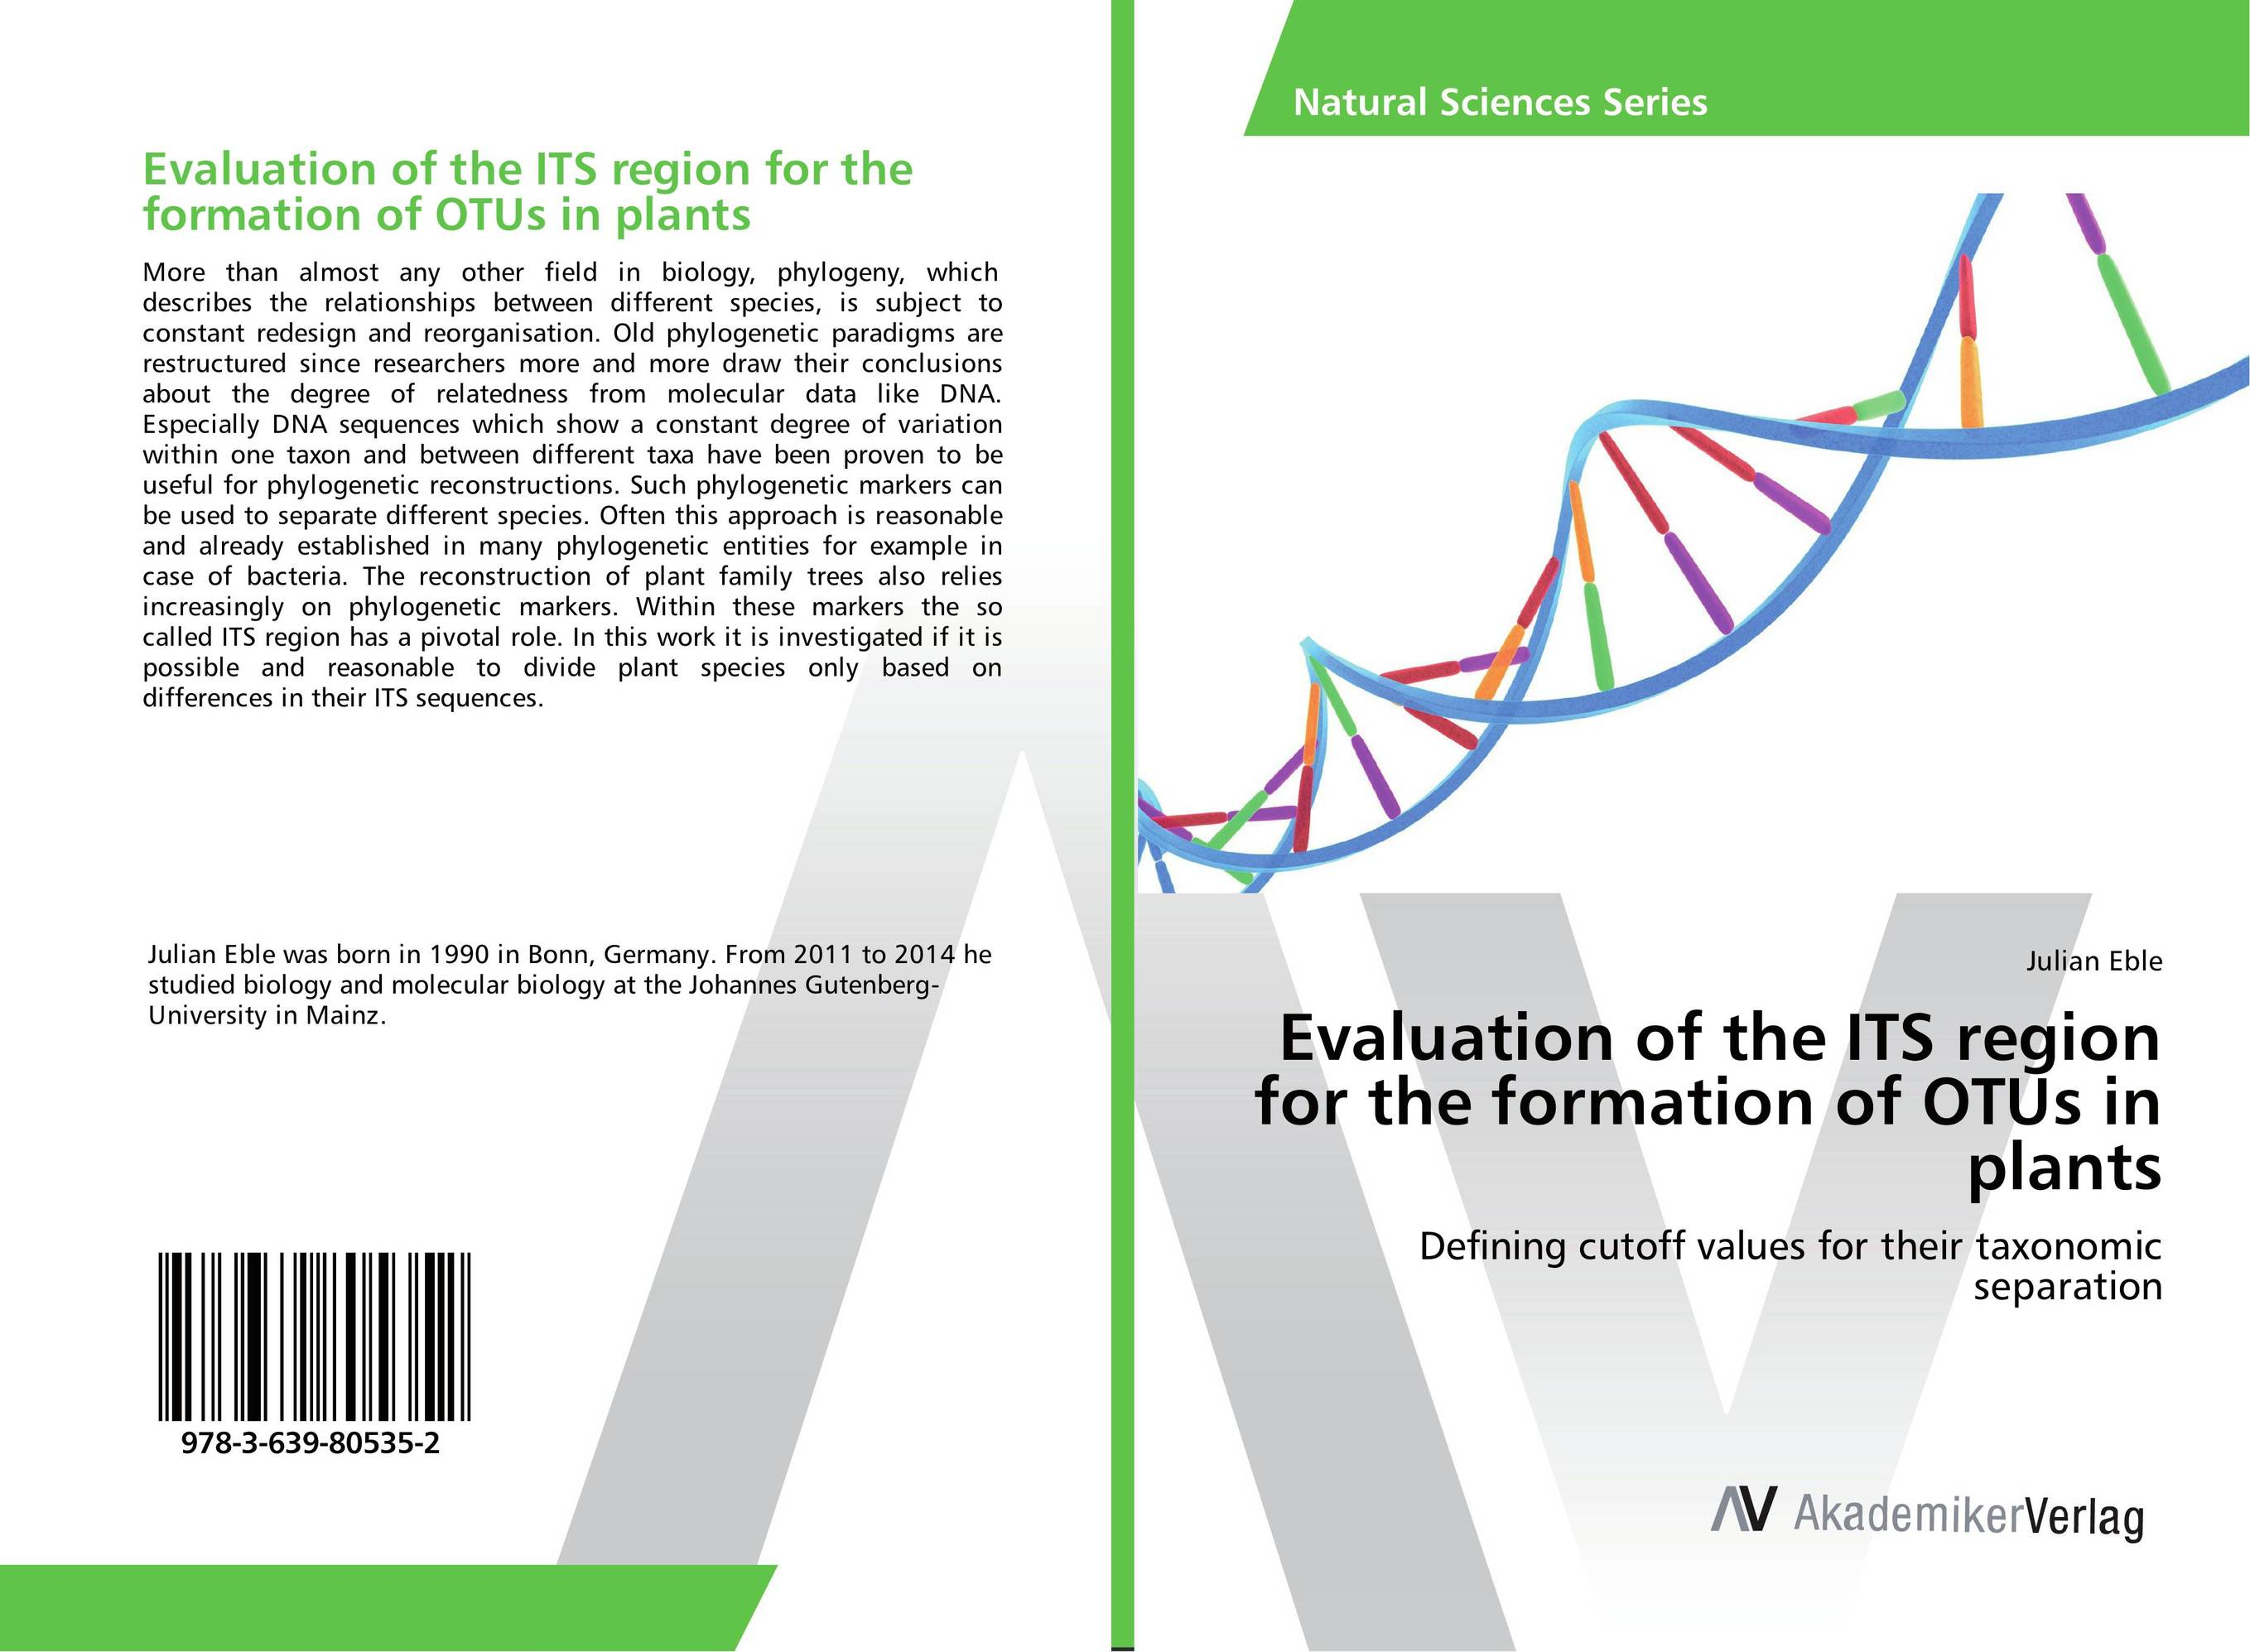 Evaluation of the ITS region for the formation of OTUs in plants building phylogenetic trees